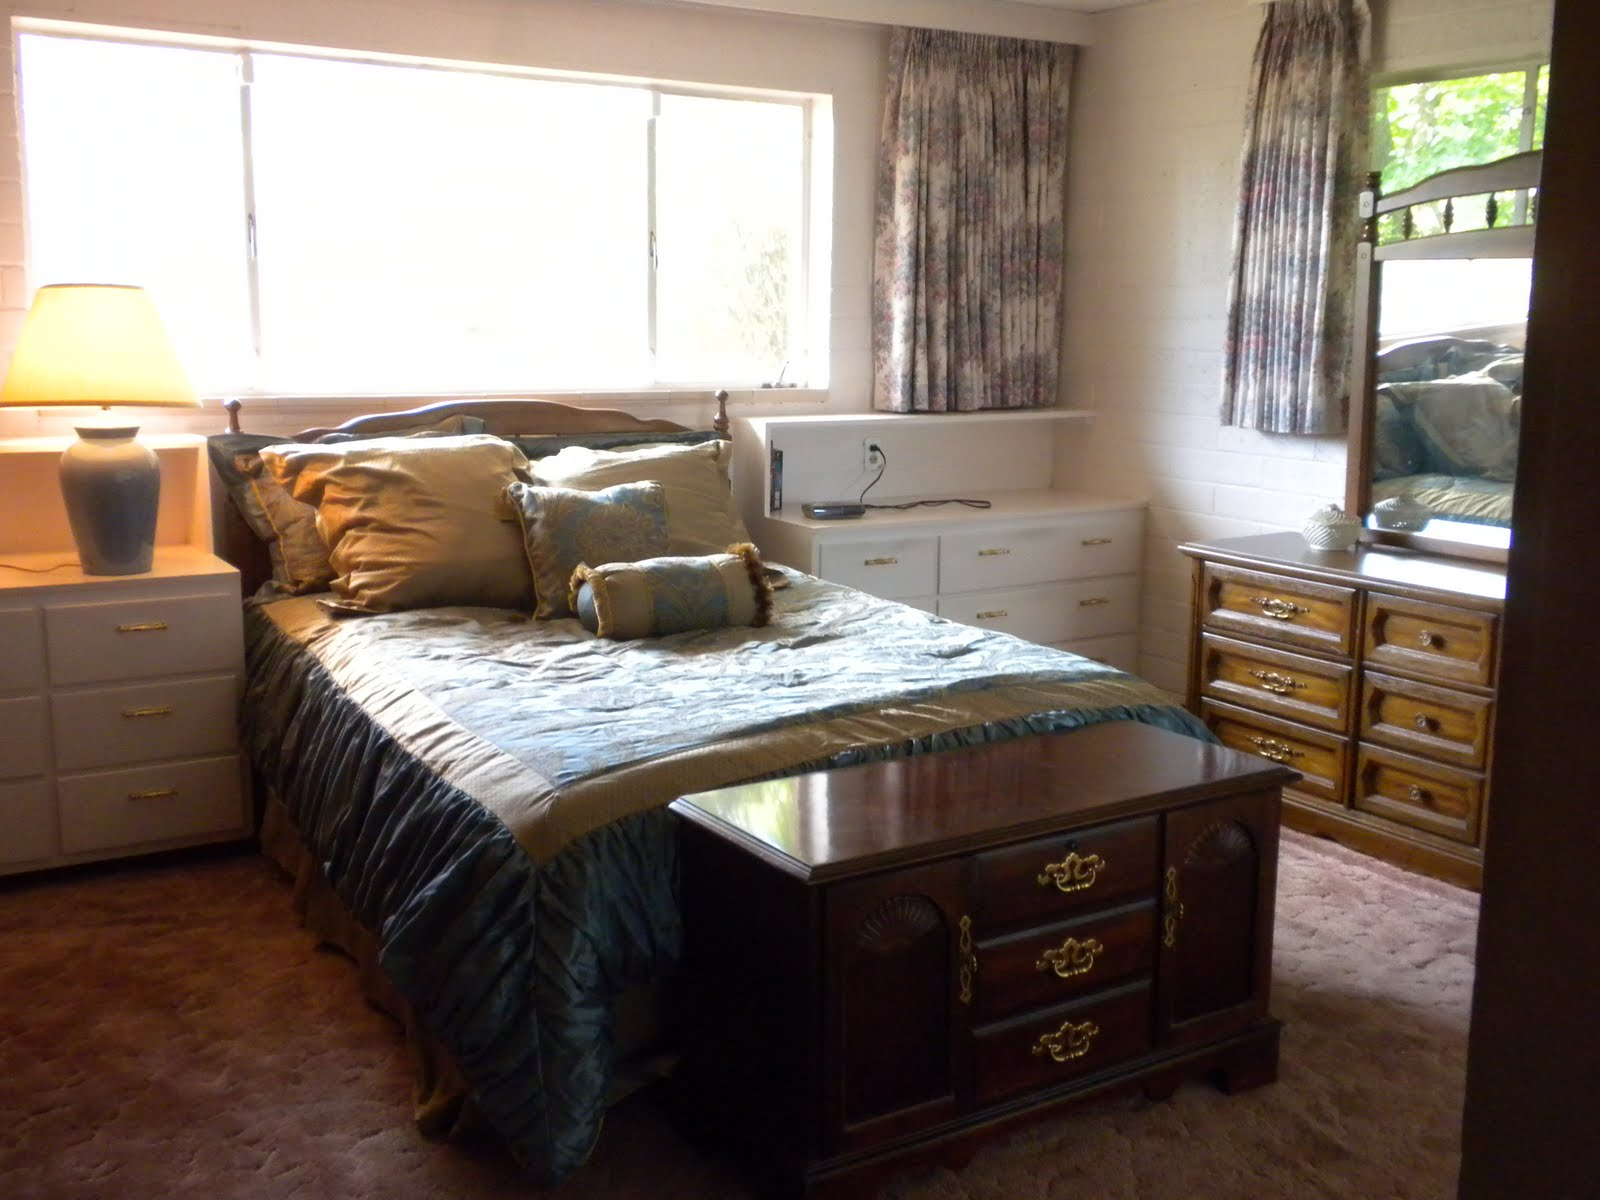 Michelle martine merrill 39 s picture of the day clean bedroom for Clean bedroom pictures